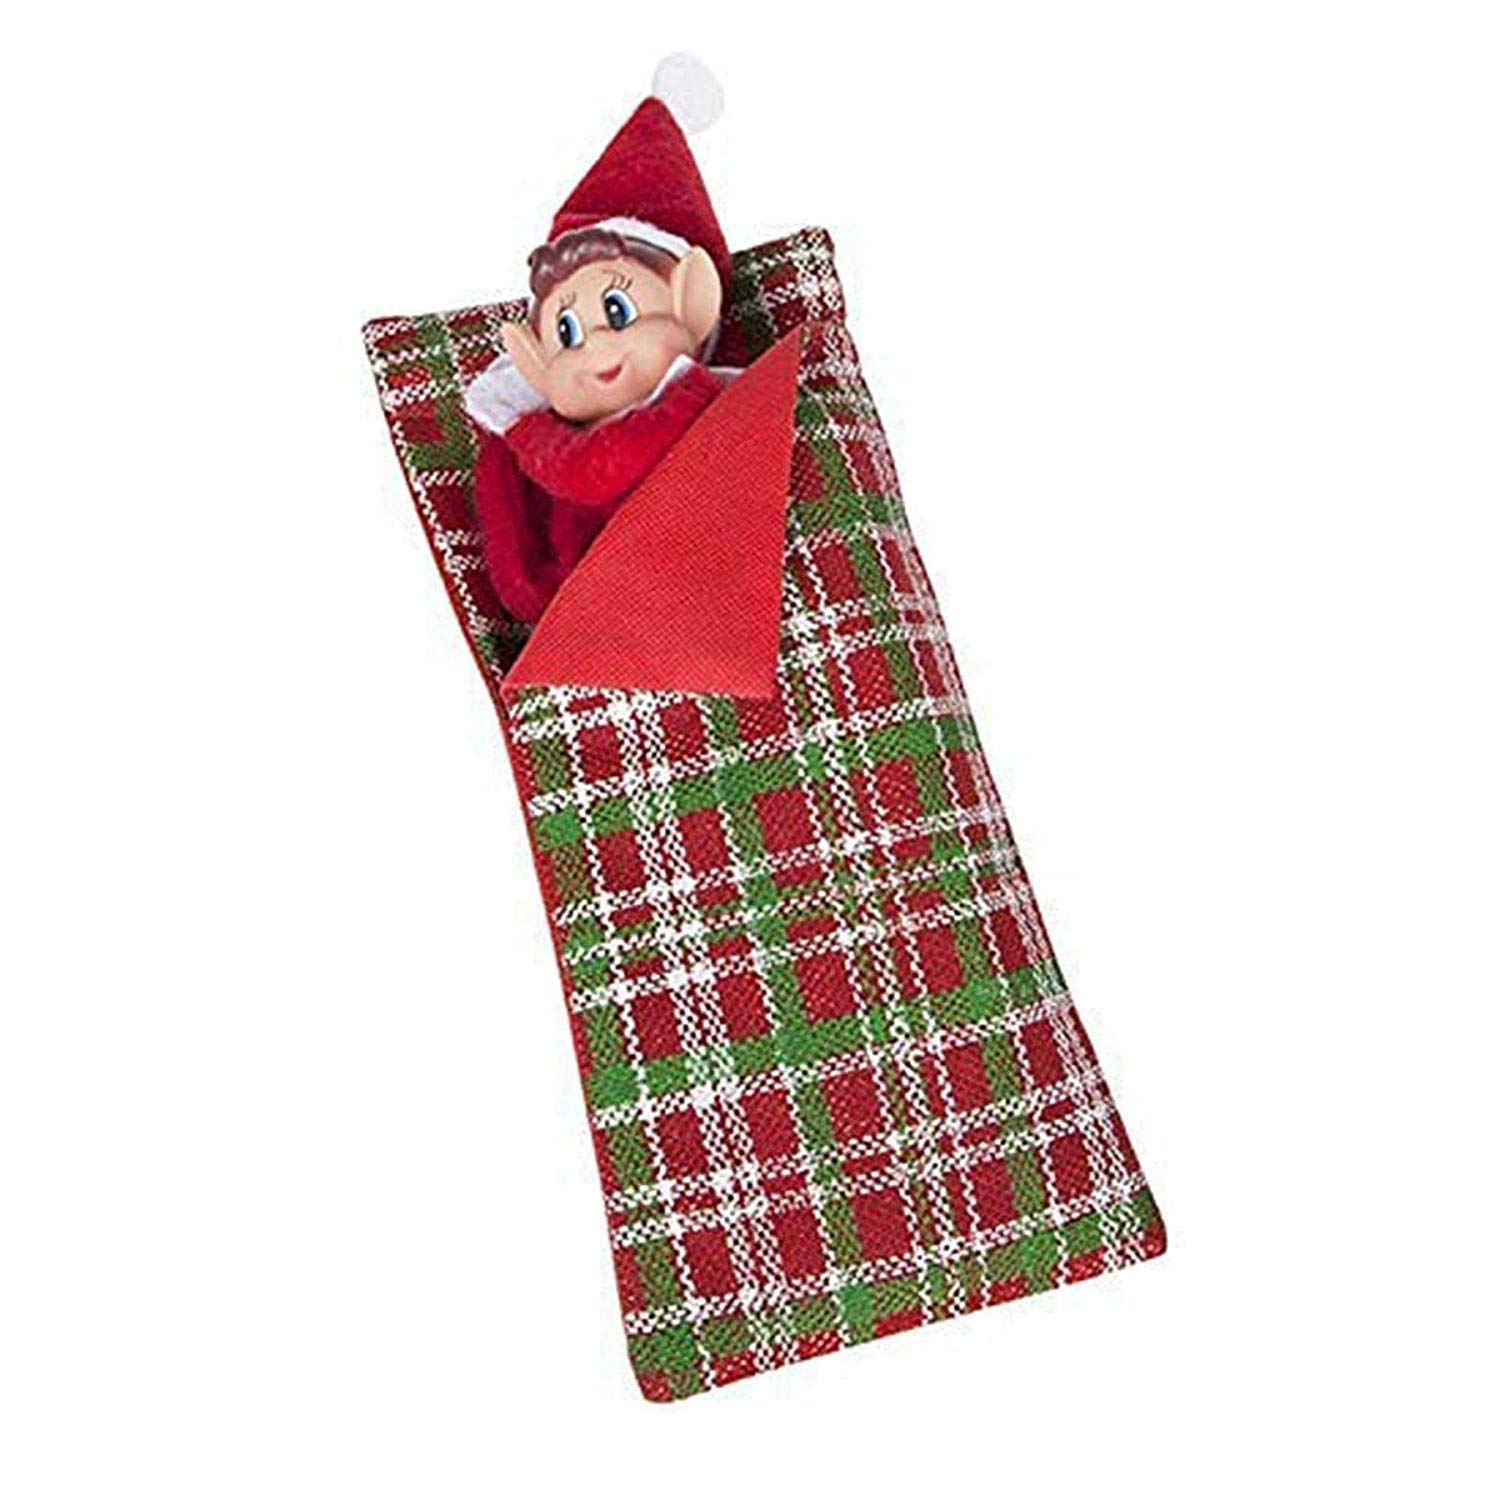 Hoolaroo VIP Elf Sleeping Bag with Pillow - VIP Elf For Christmas Accessory